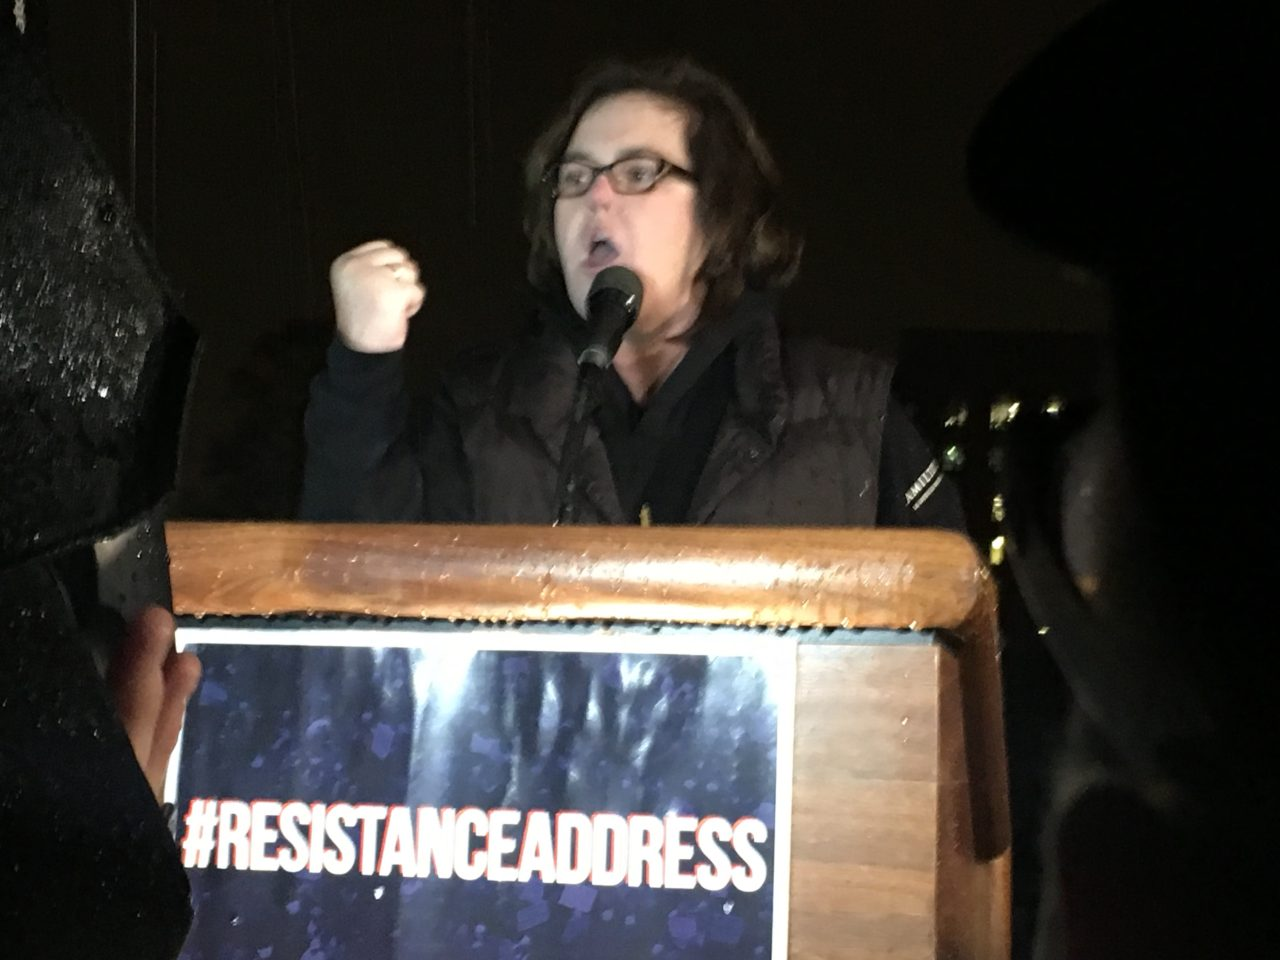 Rosie-ODonnell-WH-protest-2-28-17